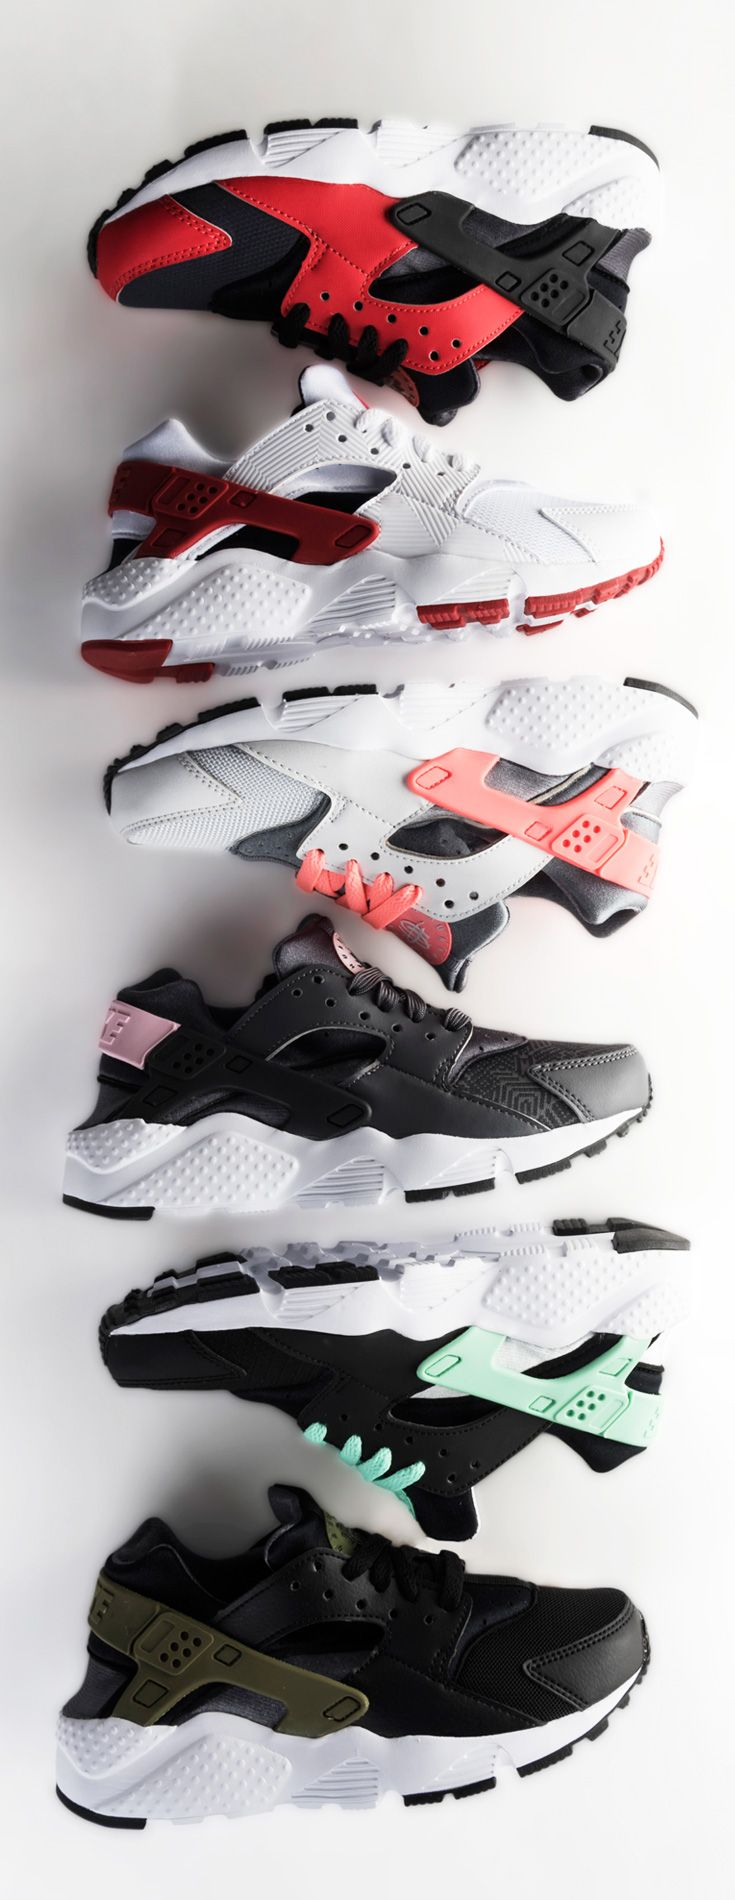 Style has no limits in the kids' Nike Huarache Run kicks — cop a pair in the hottest colors of the season.